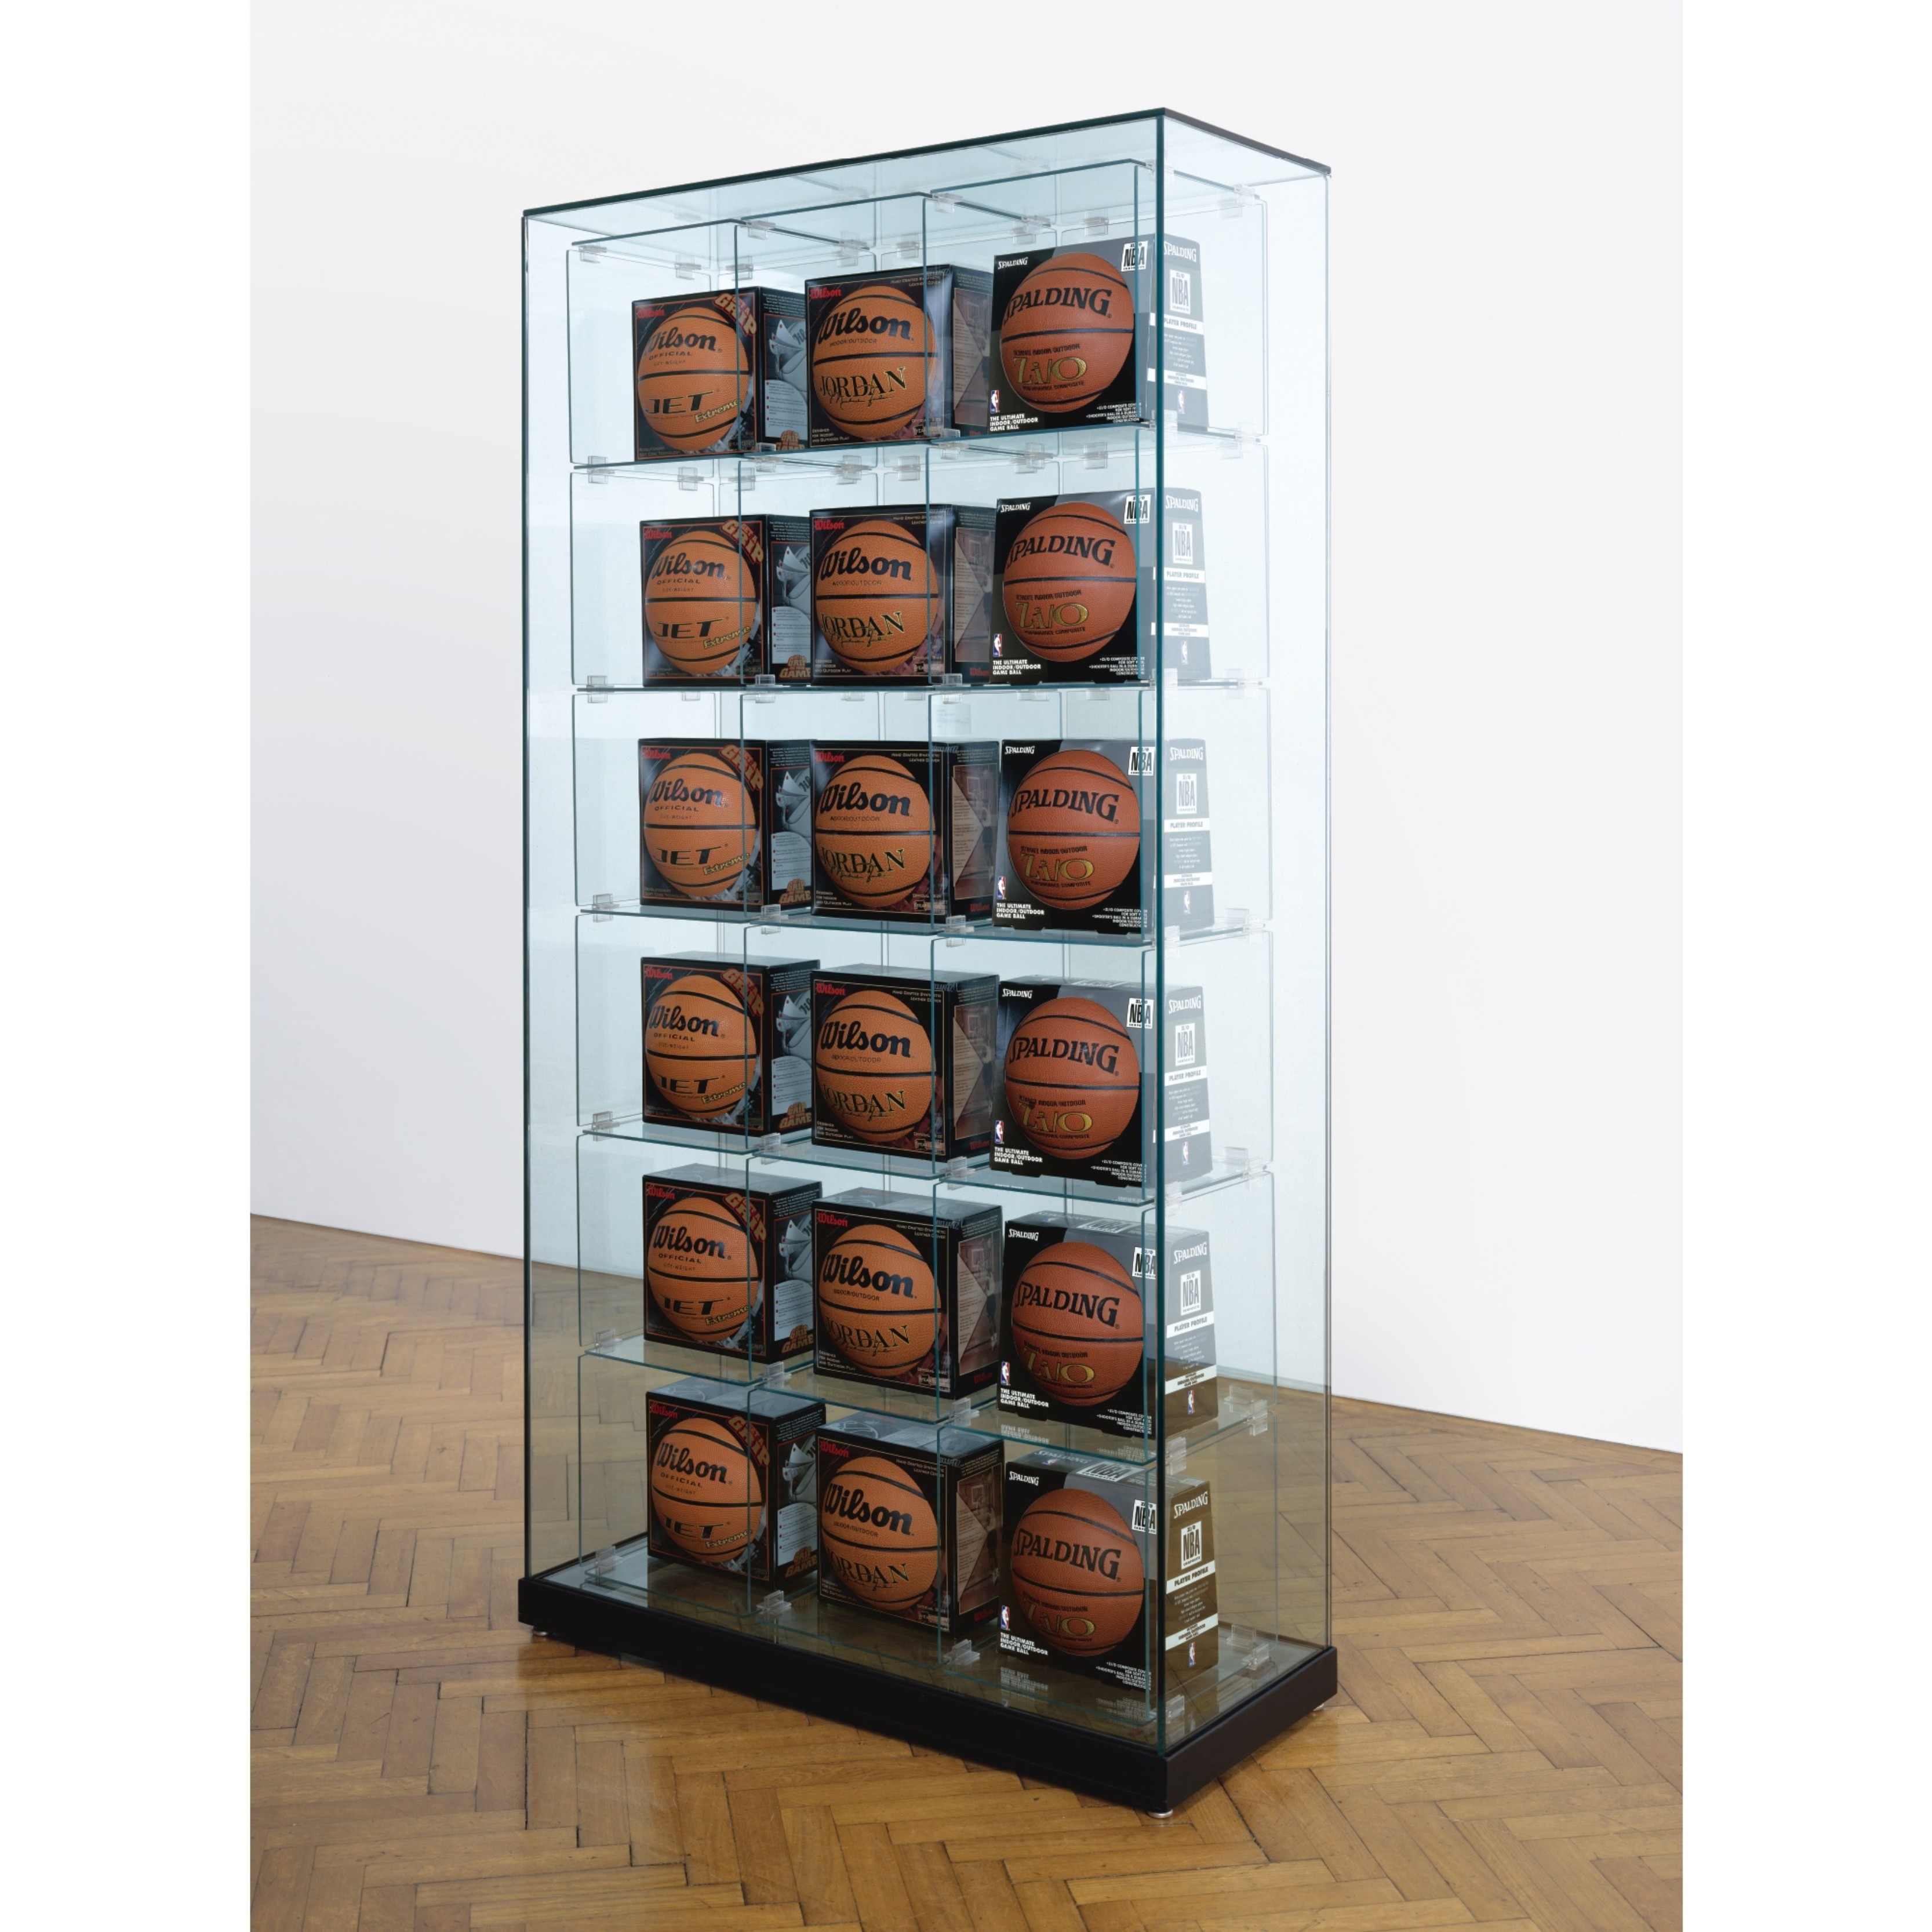 JEFF KOONS Encased - Three Rows (6 Wilson Jet Basketballs, 6 Wilson Michael Jordan Basketballs, 6 Spalding Zi/O Basketballs) 1983-1993/98 Glass, plastic, steel, basketballs 203.2 x 108 x 43.8cm Image courtesy of Private Collection, London